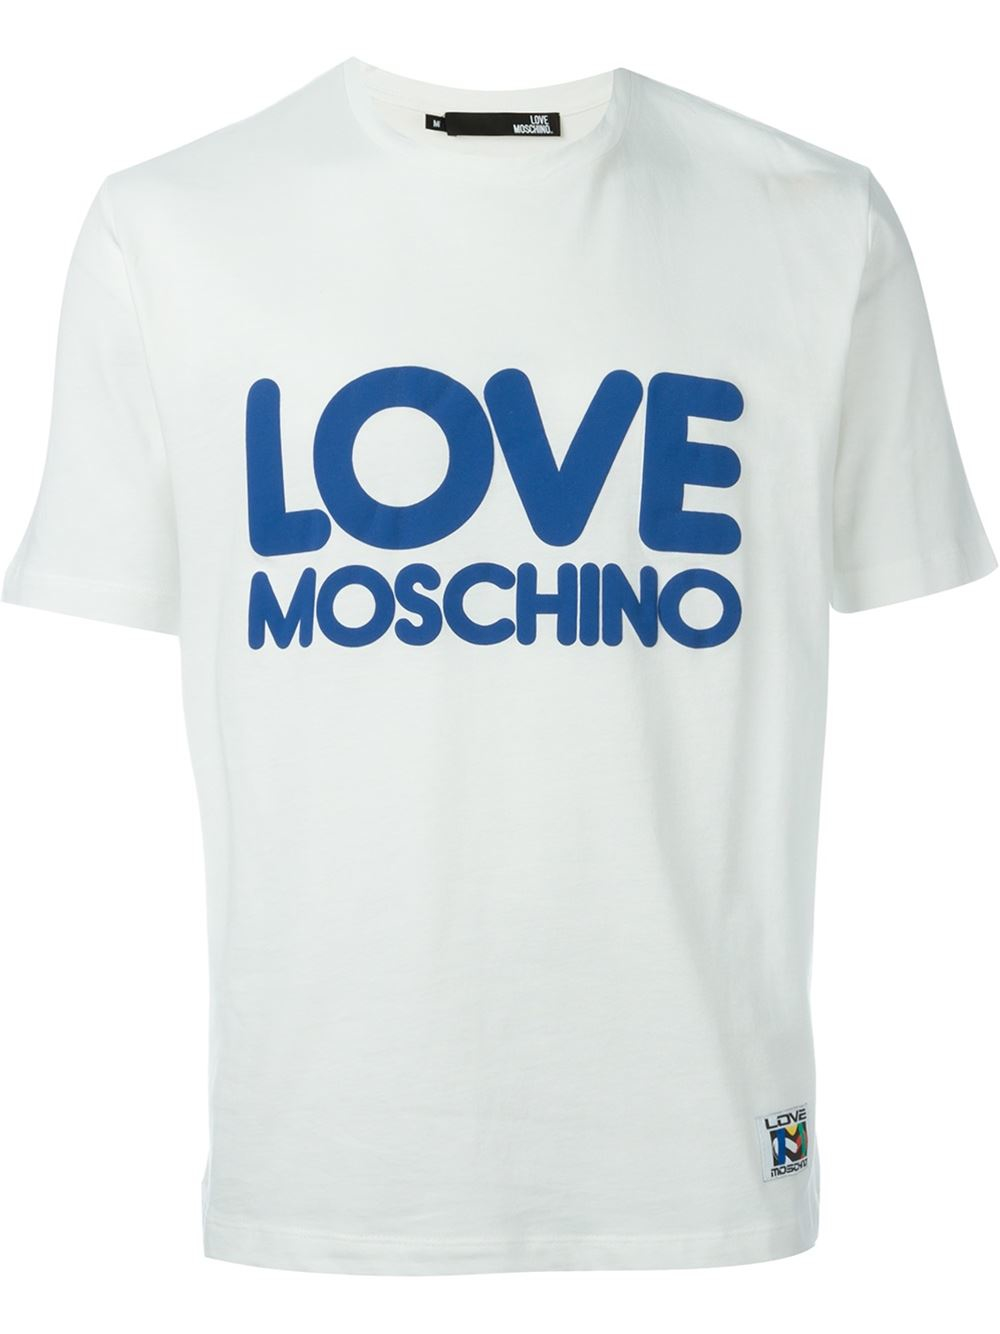 moschino love print t shirt in white for men lyst. Black Bedroom Furniture Sets. Home Design Ideas